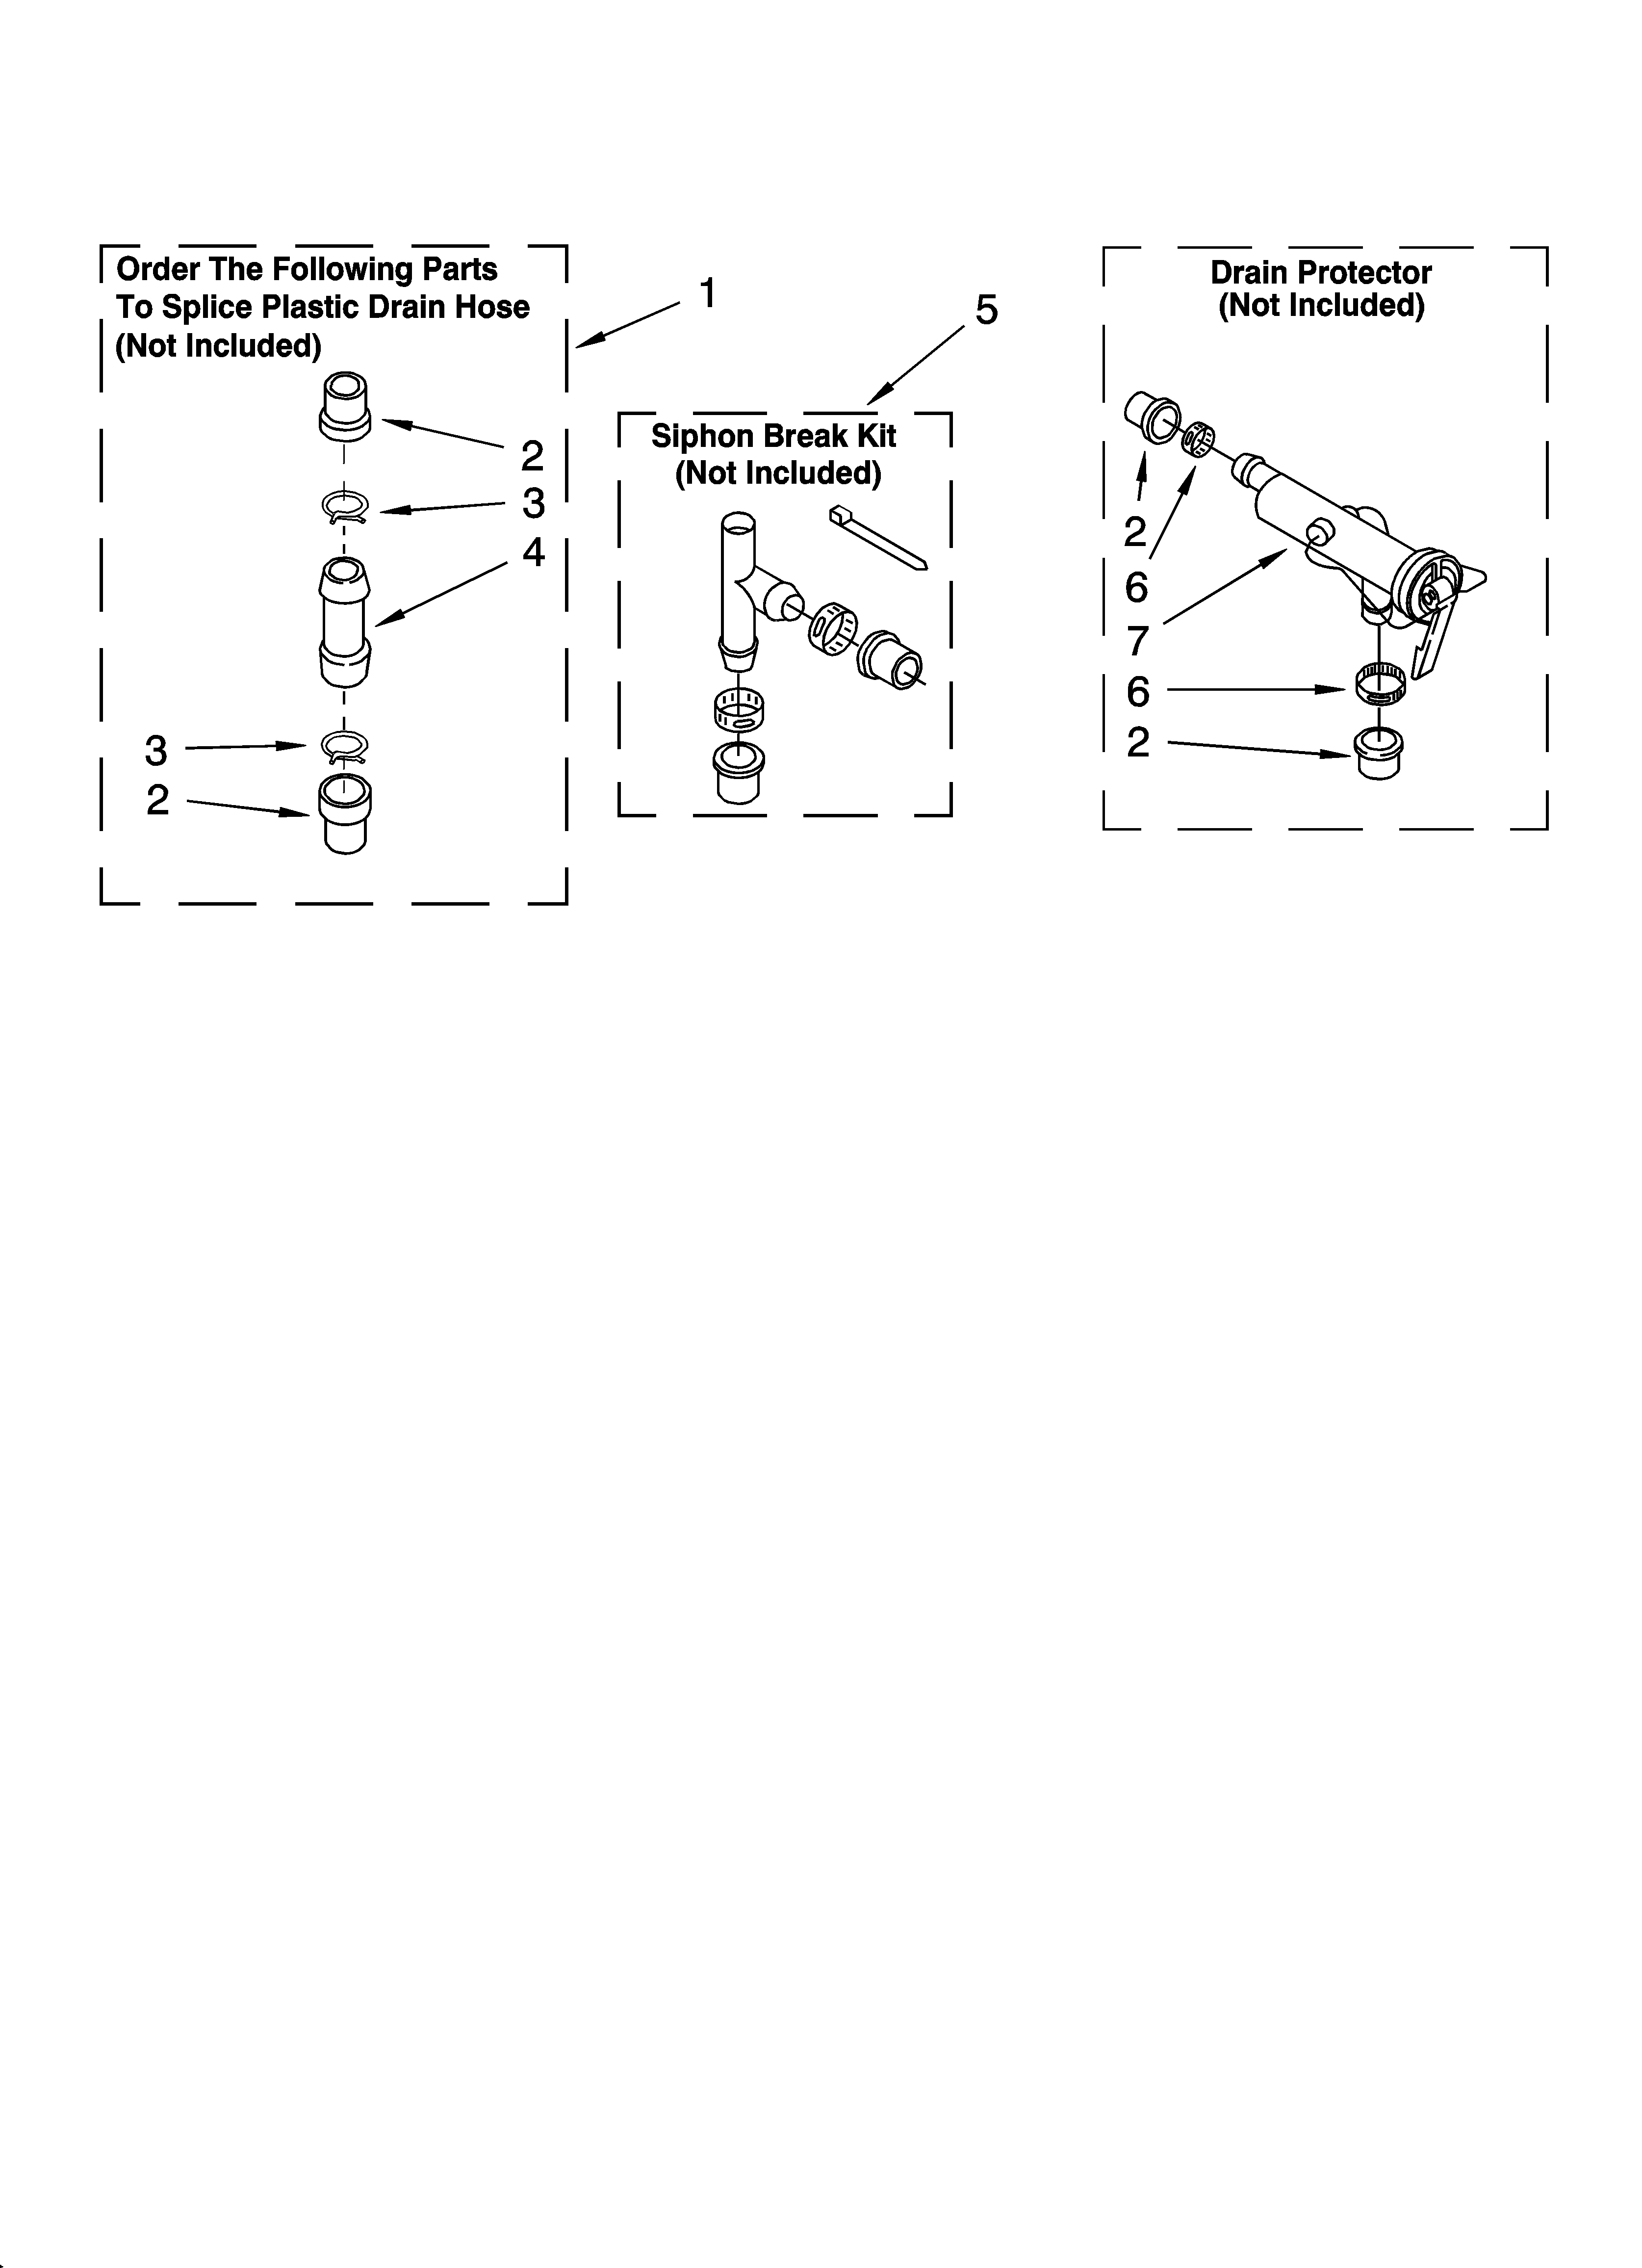 Whirlpool LSN1000LW3 water system parts diagram